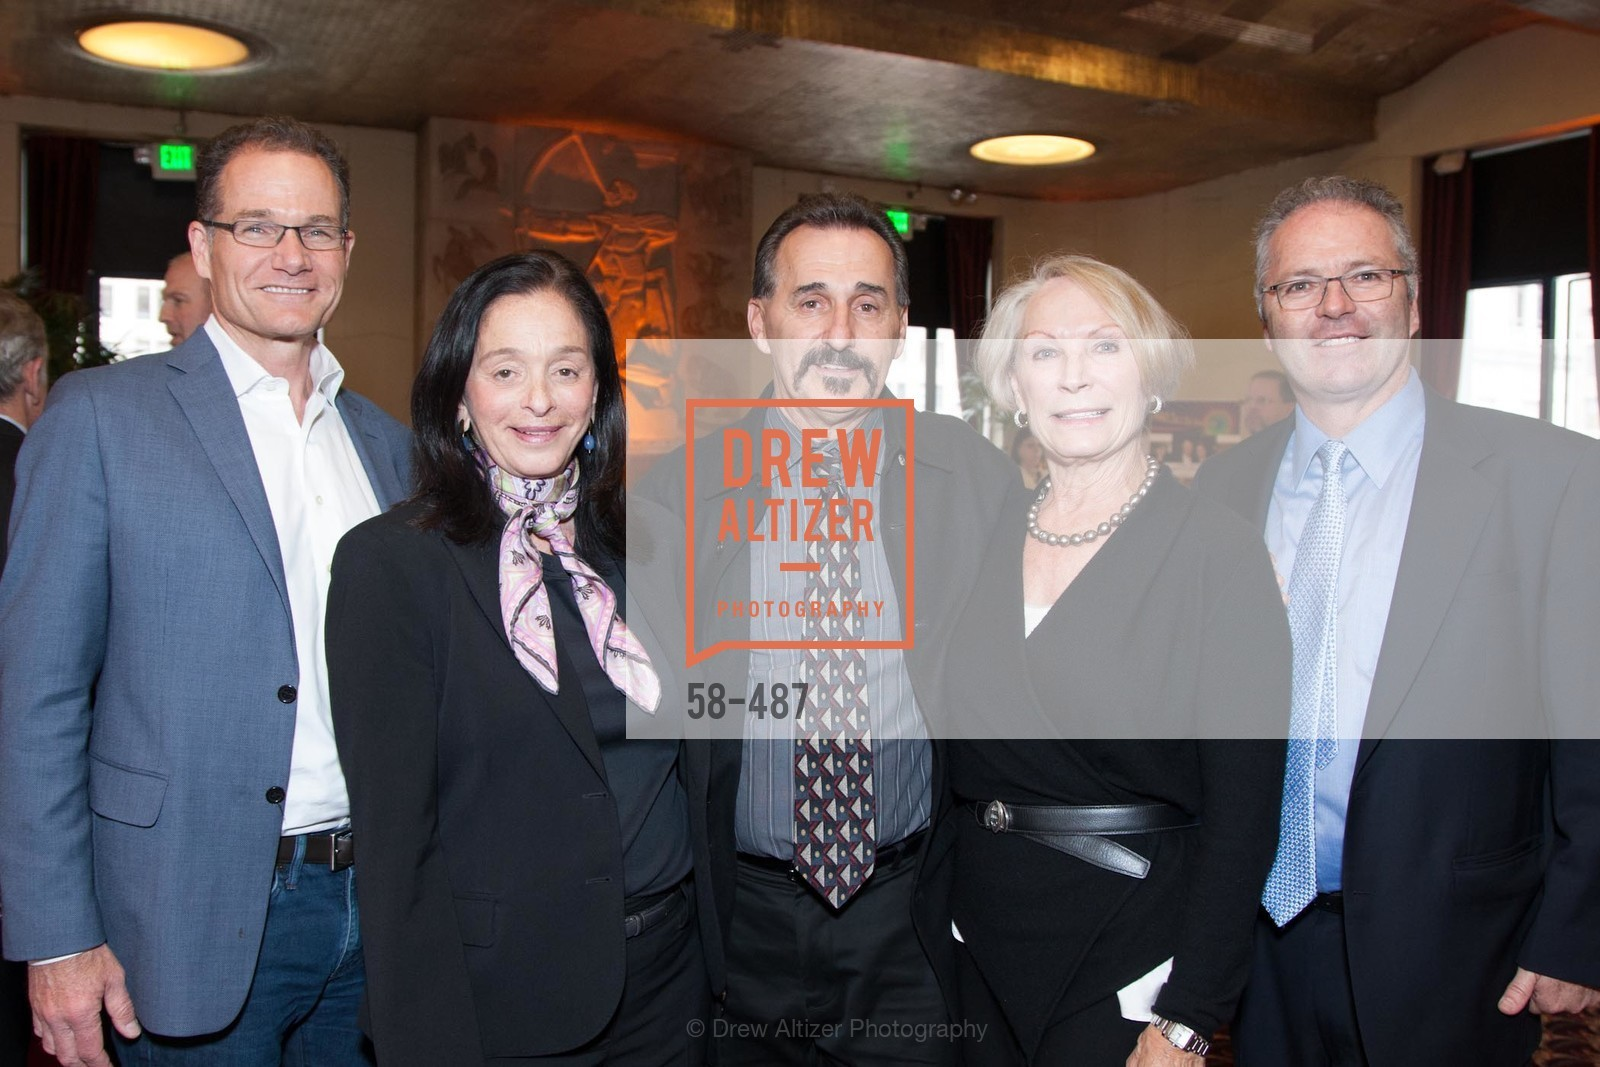 Bruce Armstrong, Ellen Chaitin, Wayne Garcia, Millicent Buxton-Smith, Andrew Clark, Campaign Launch - David E. Smith, MD Medical Clinic, US. US, April 1st, 2014,Drew Altizer, Drew Altizer Photography, full-service agency, private events, San Francisco photographer, photographer california